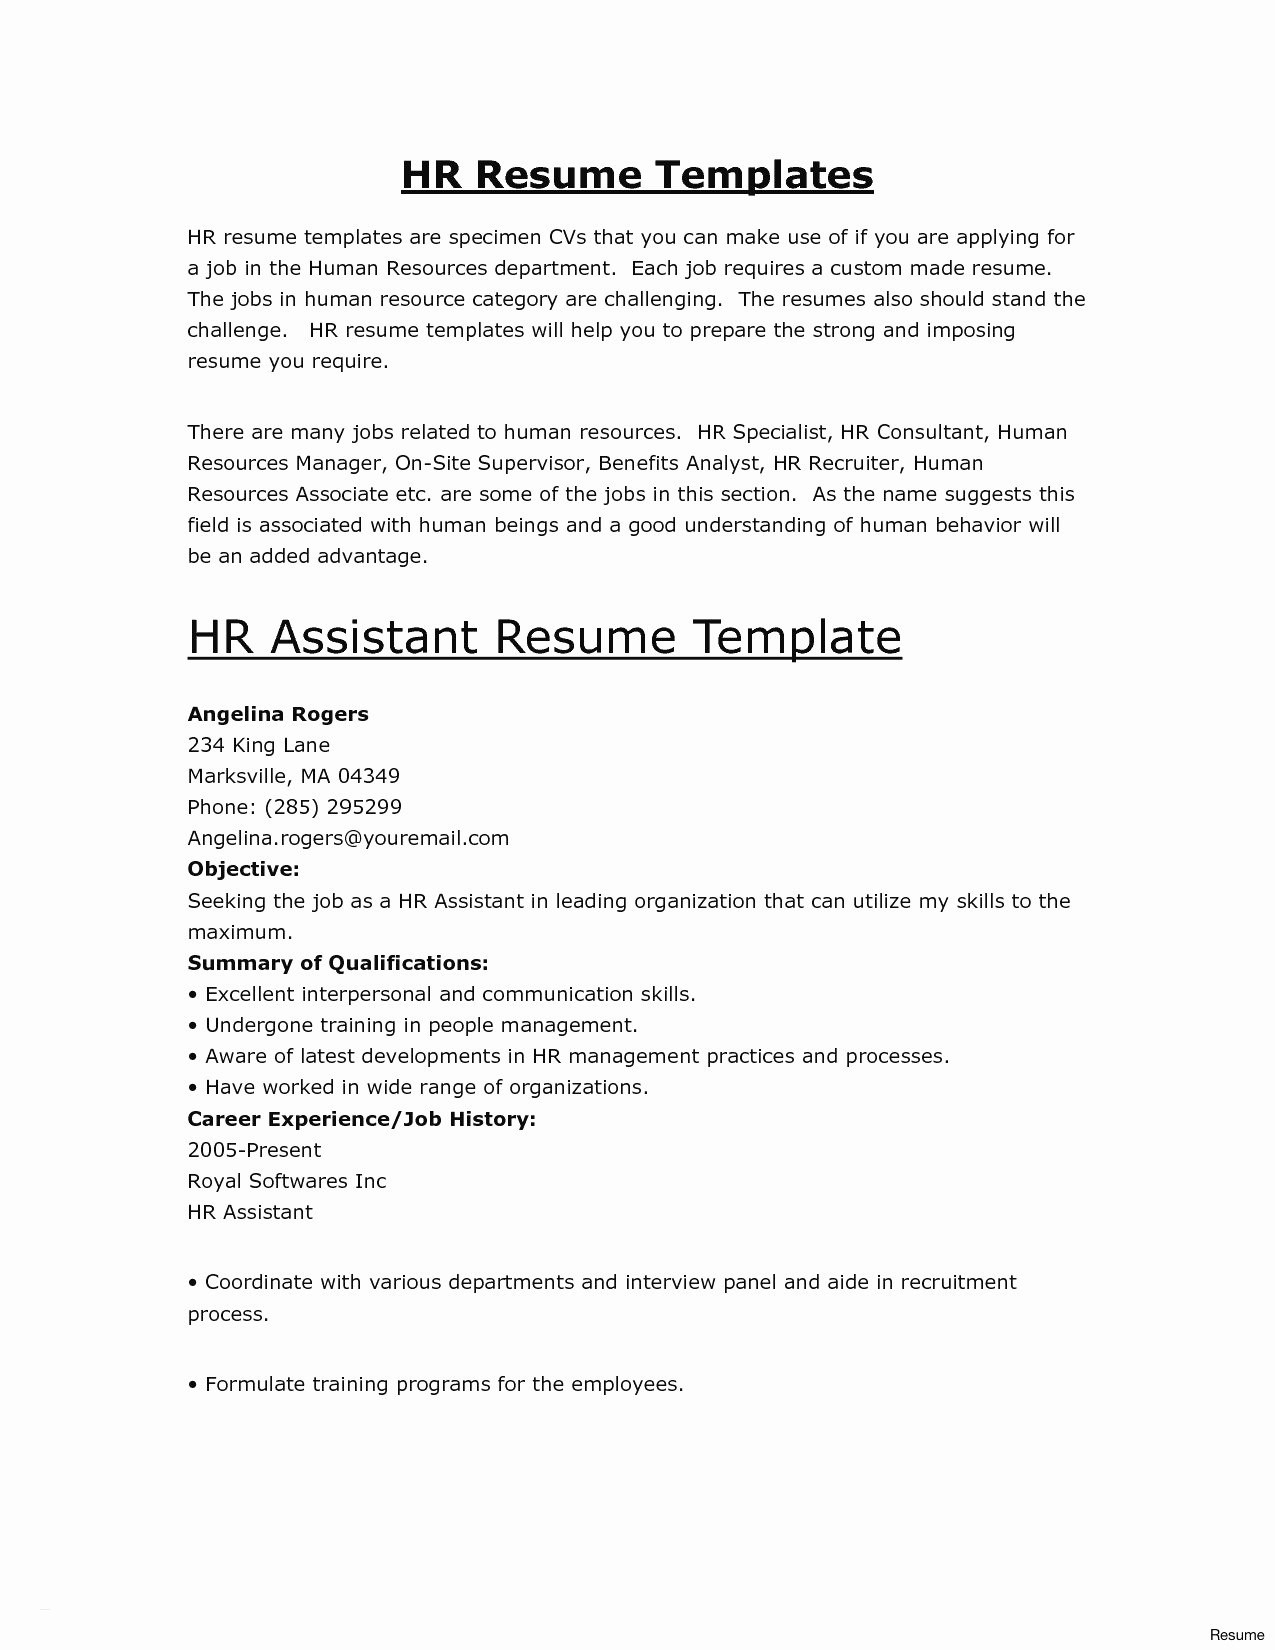 online resume templates example-Word 2013 Resume Templates New Lovely Pr Resume Template Elegant Dictionary Template 0d Archives 15-n